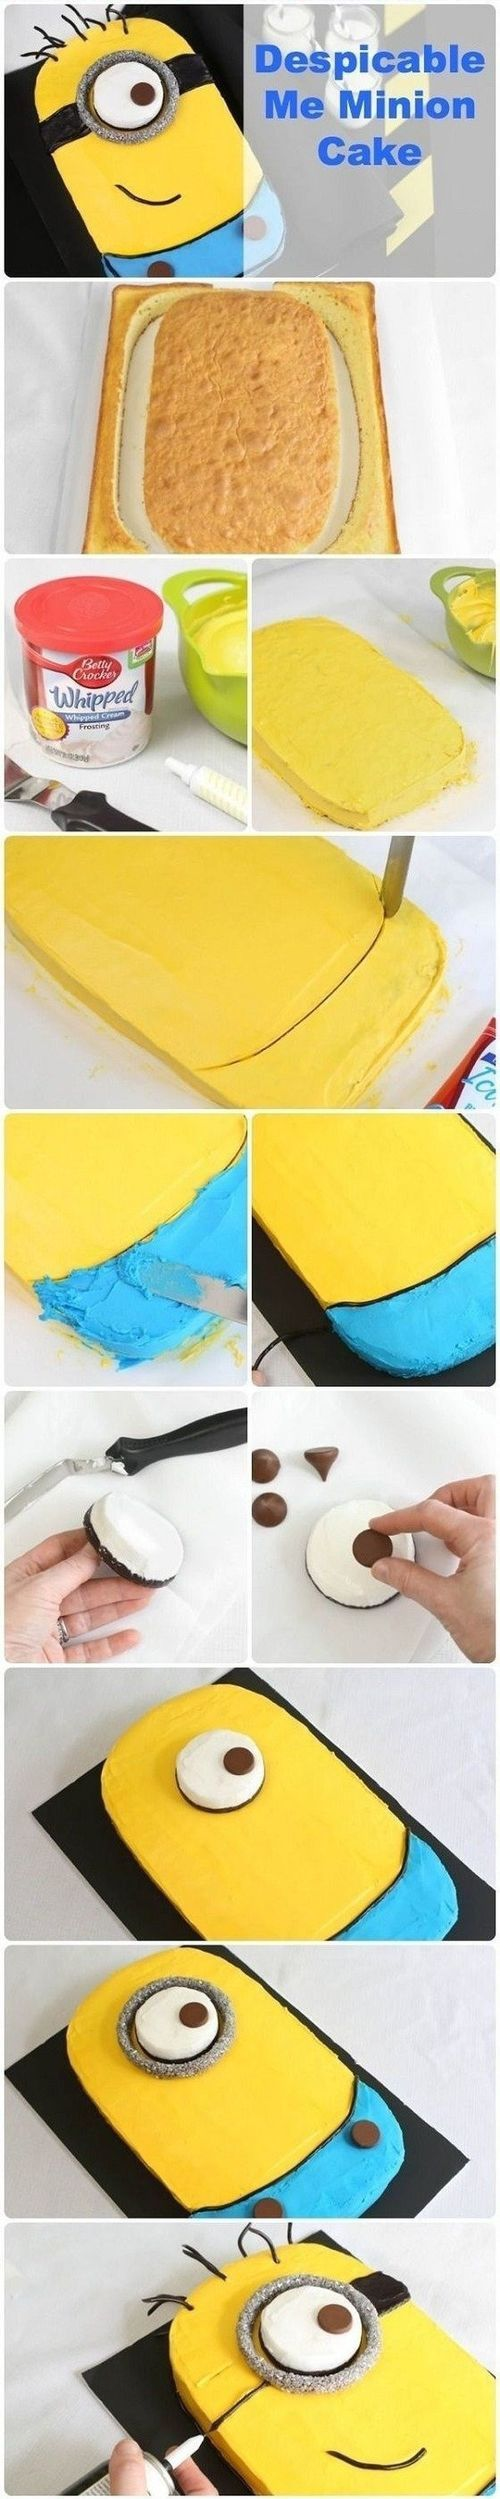 DIY Minion Cake Pictures, Photos, and Images for Facebook, Tumblr, Pinterest, and Twitter